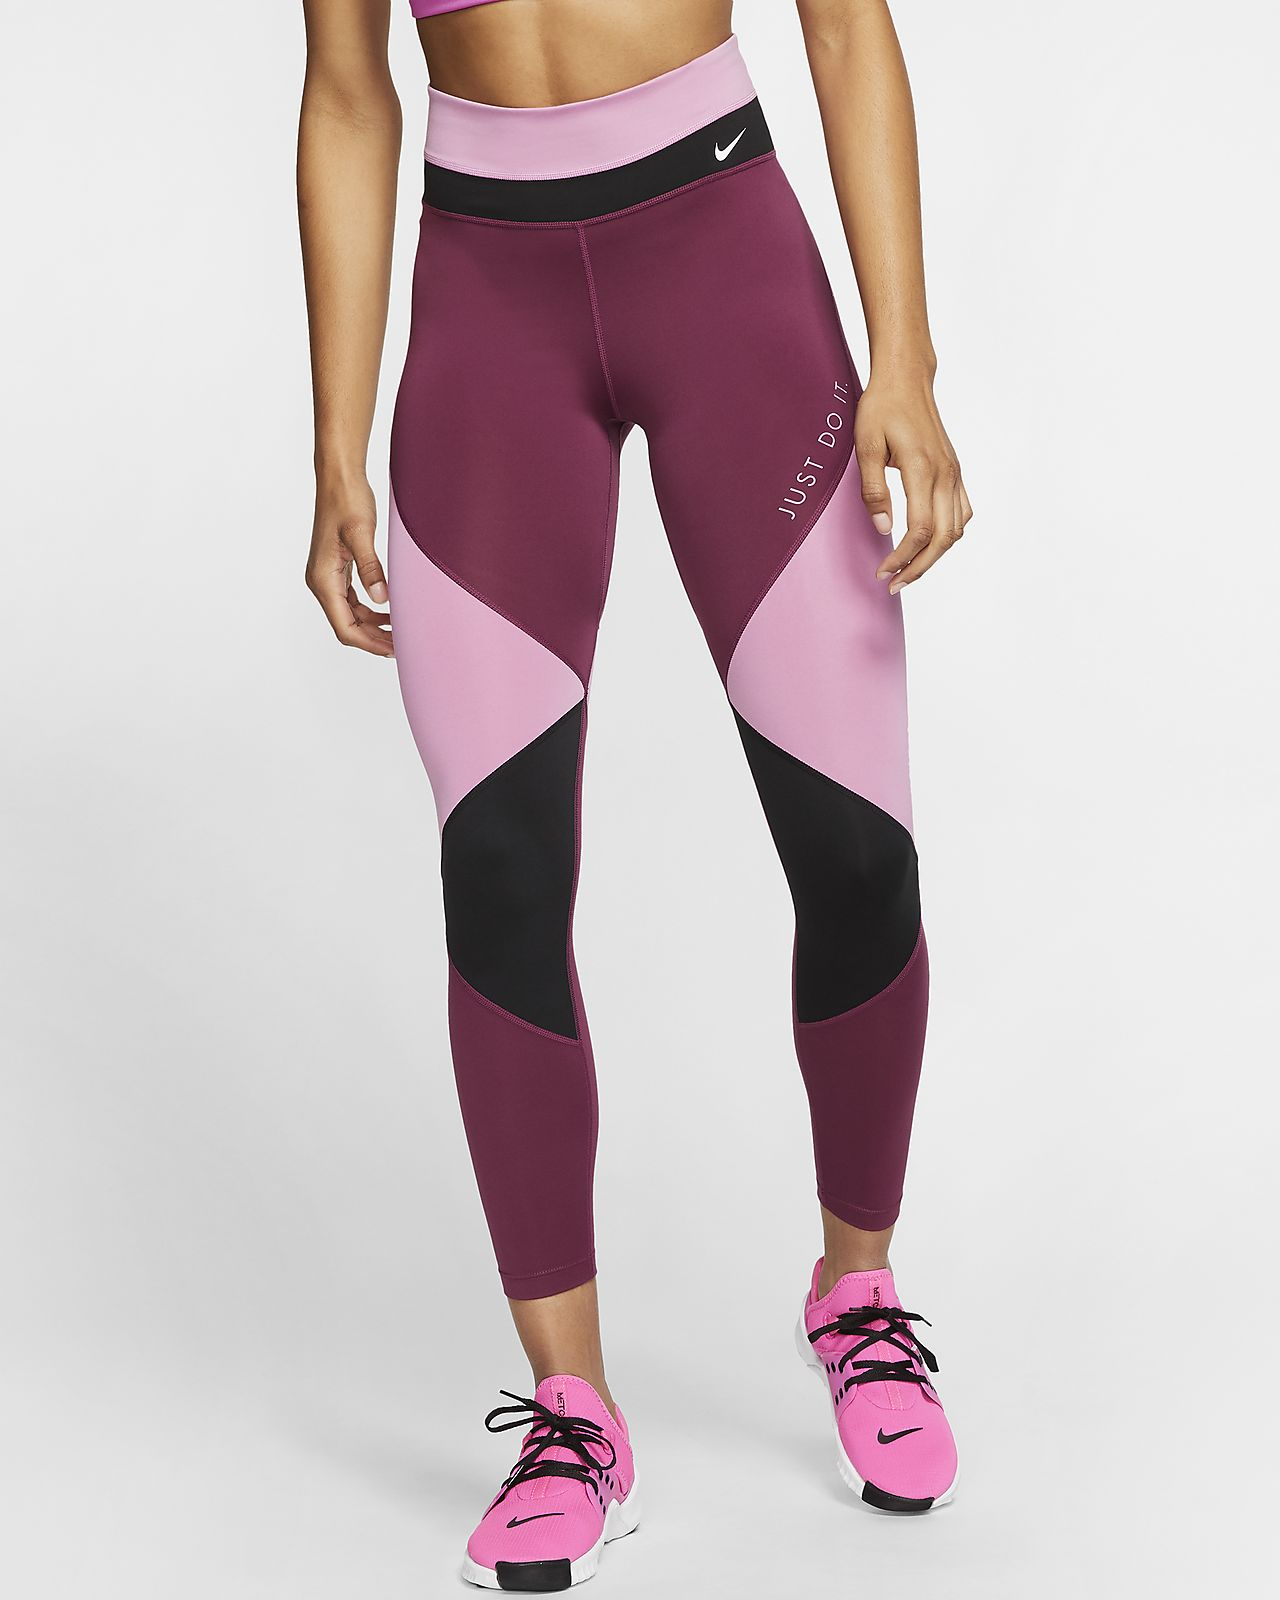 Nike One Women's 7/8 Tights